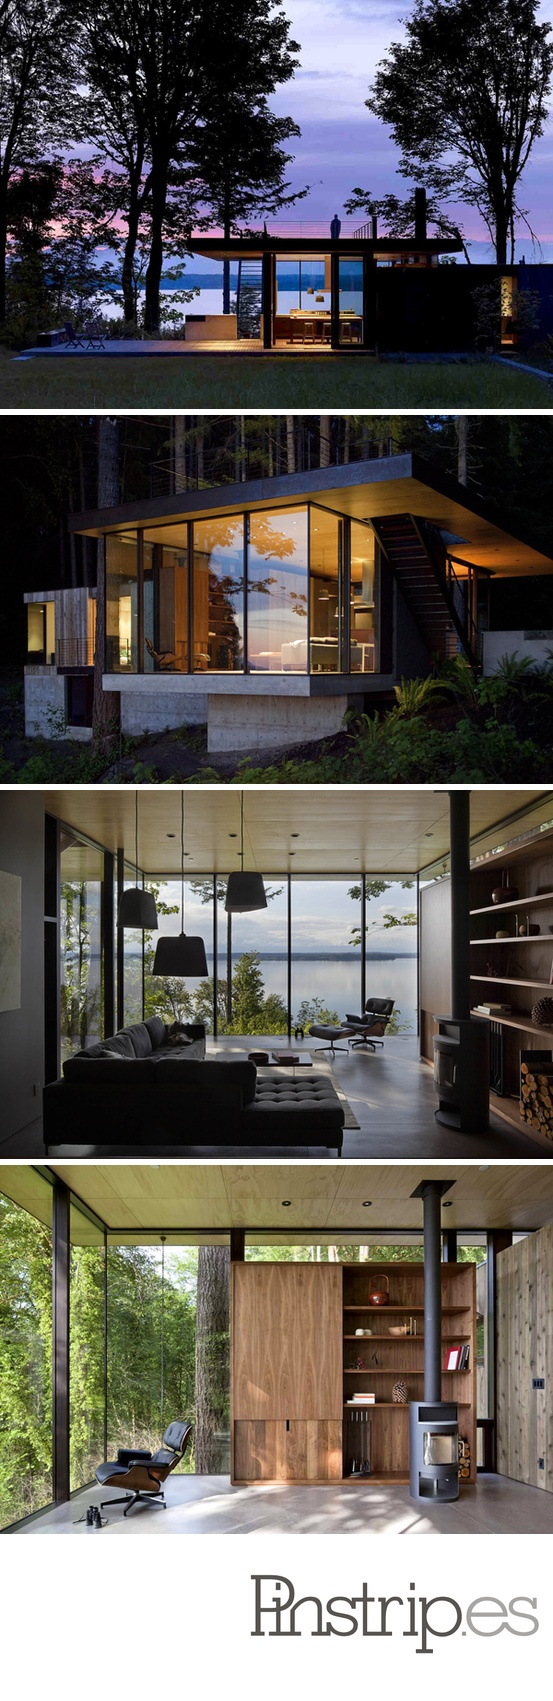 Mw works architecture -  The Case Inlet Retreat In Puget Sound Washington As A Simple Modern Piece Of